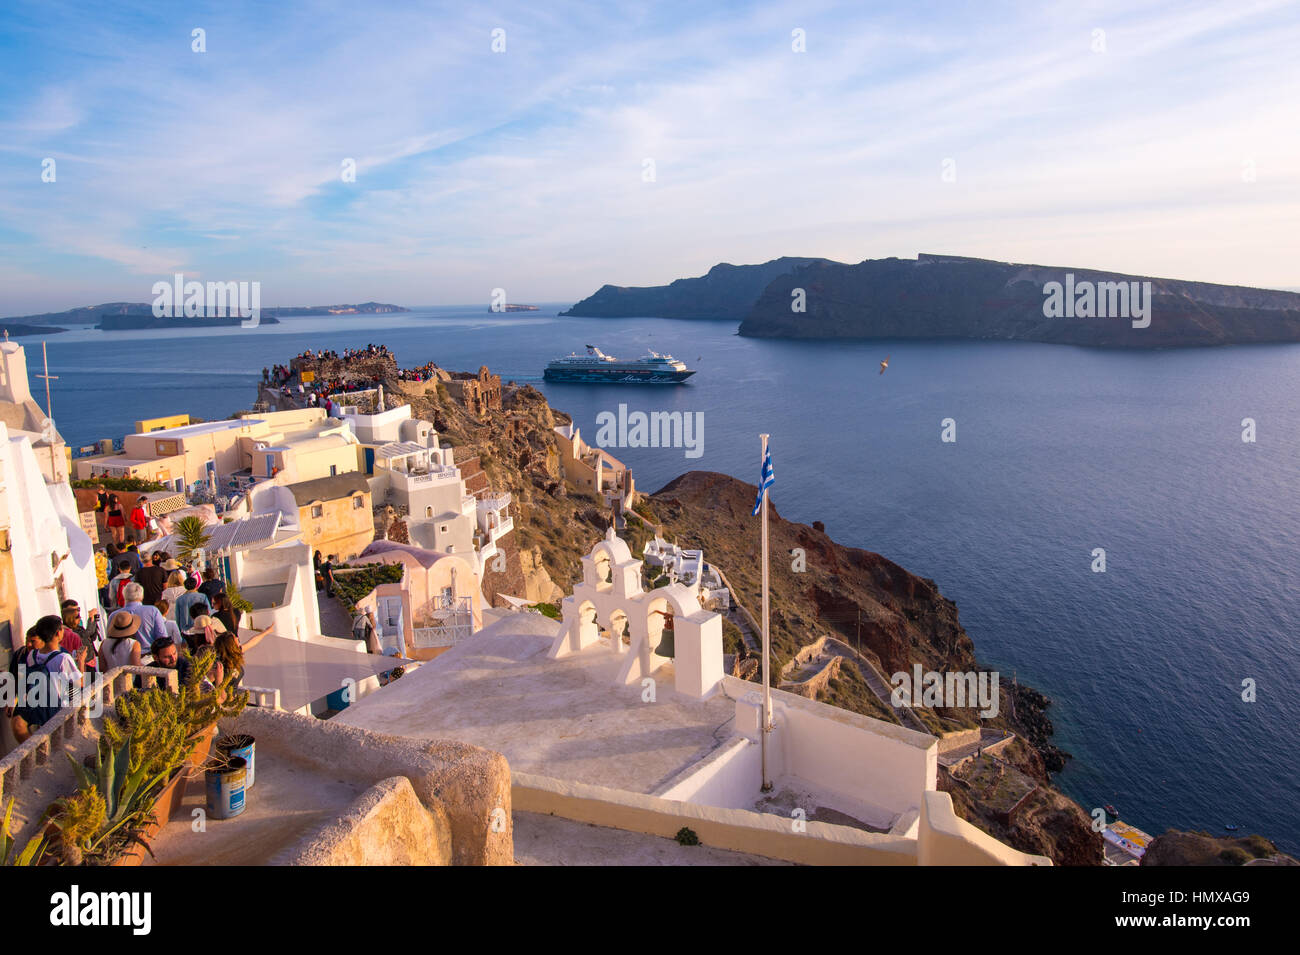 View of the sea from Oia, Santorini with Mein Schiff cruise ship - Stock Image